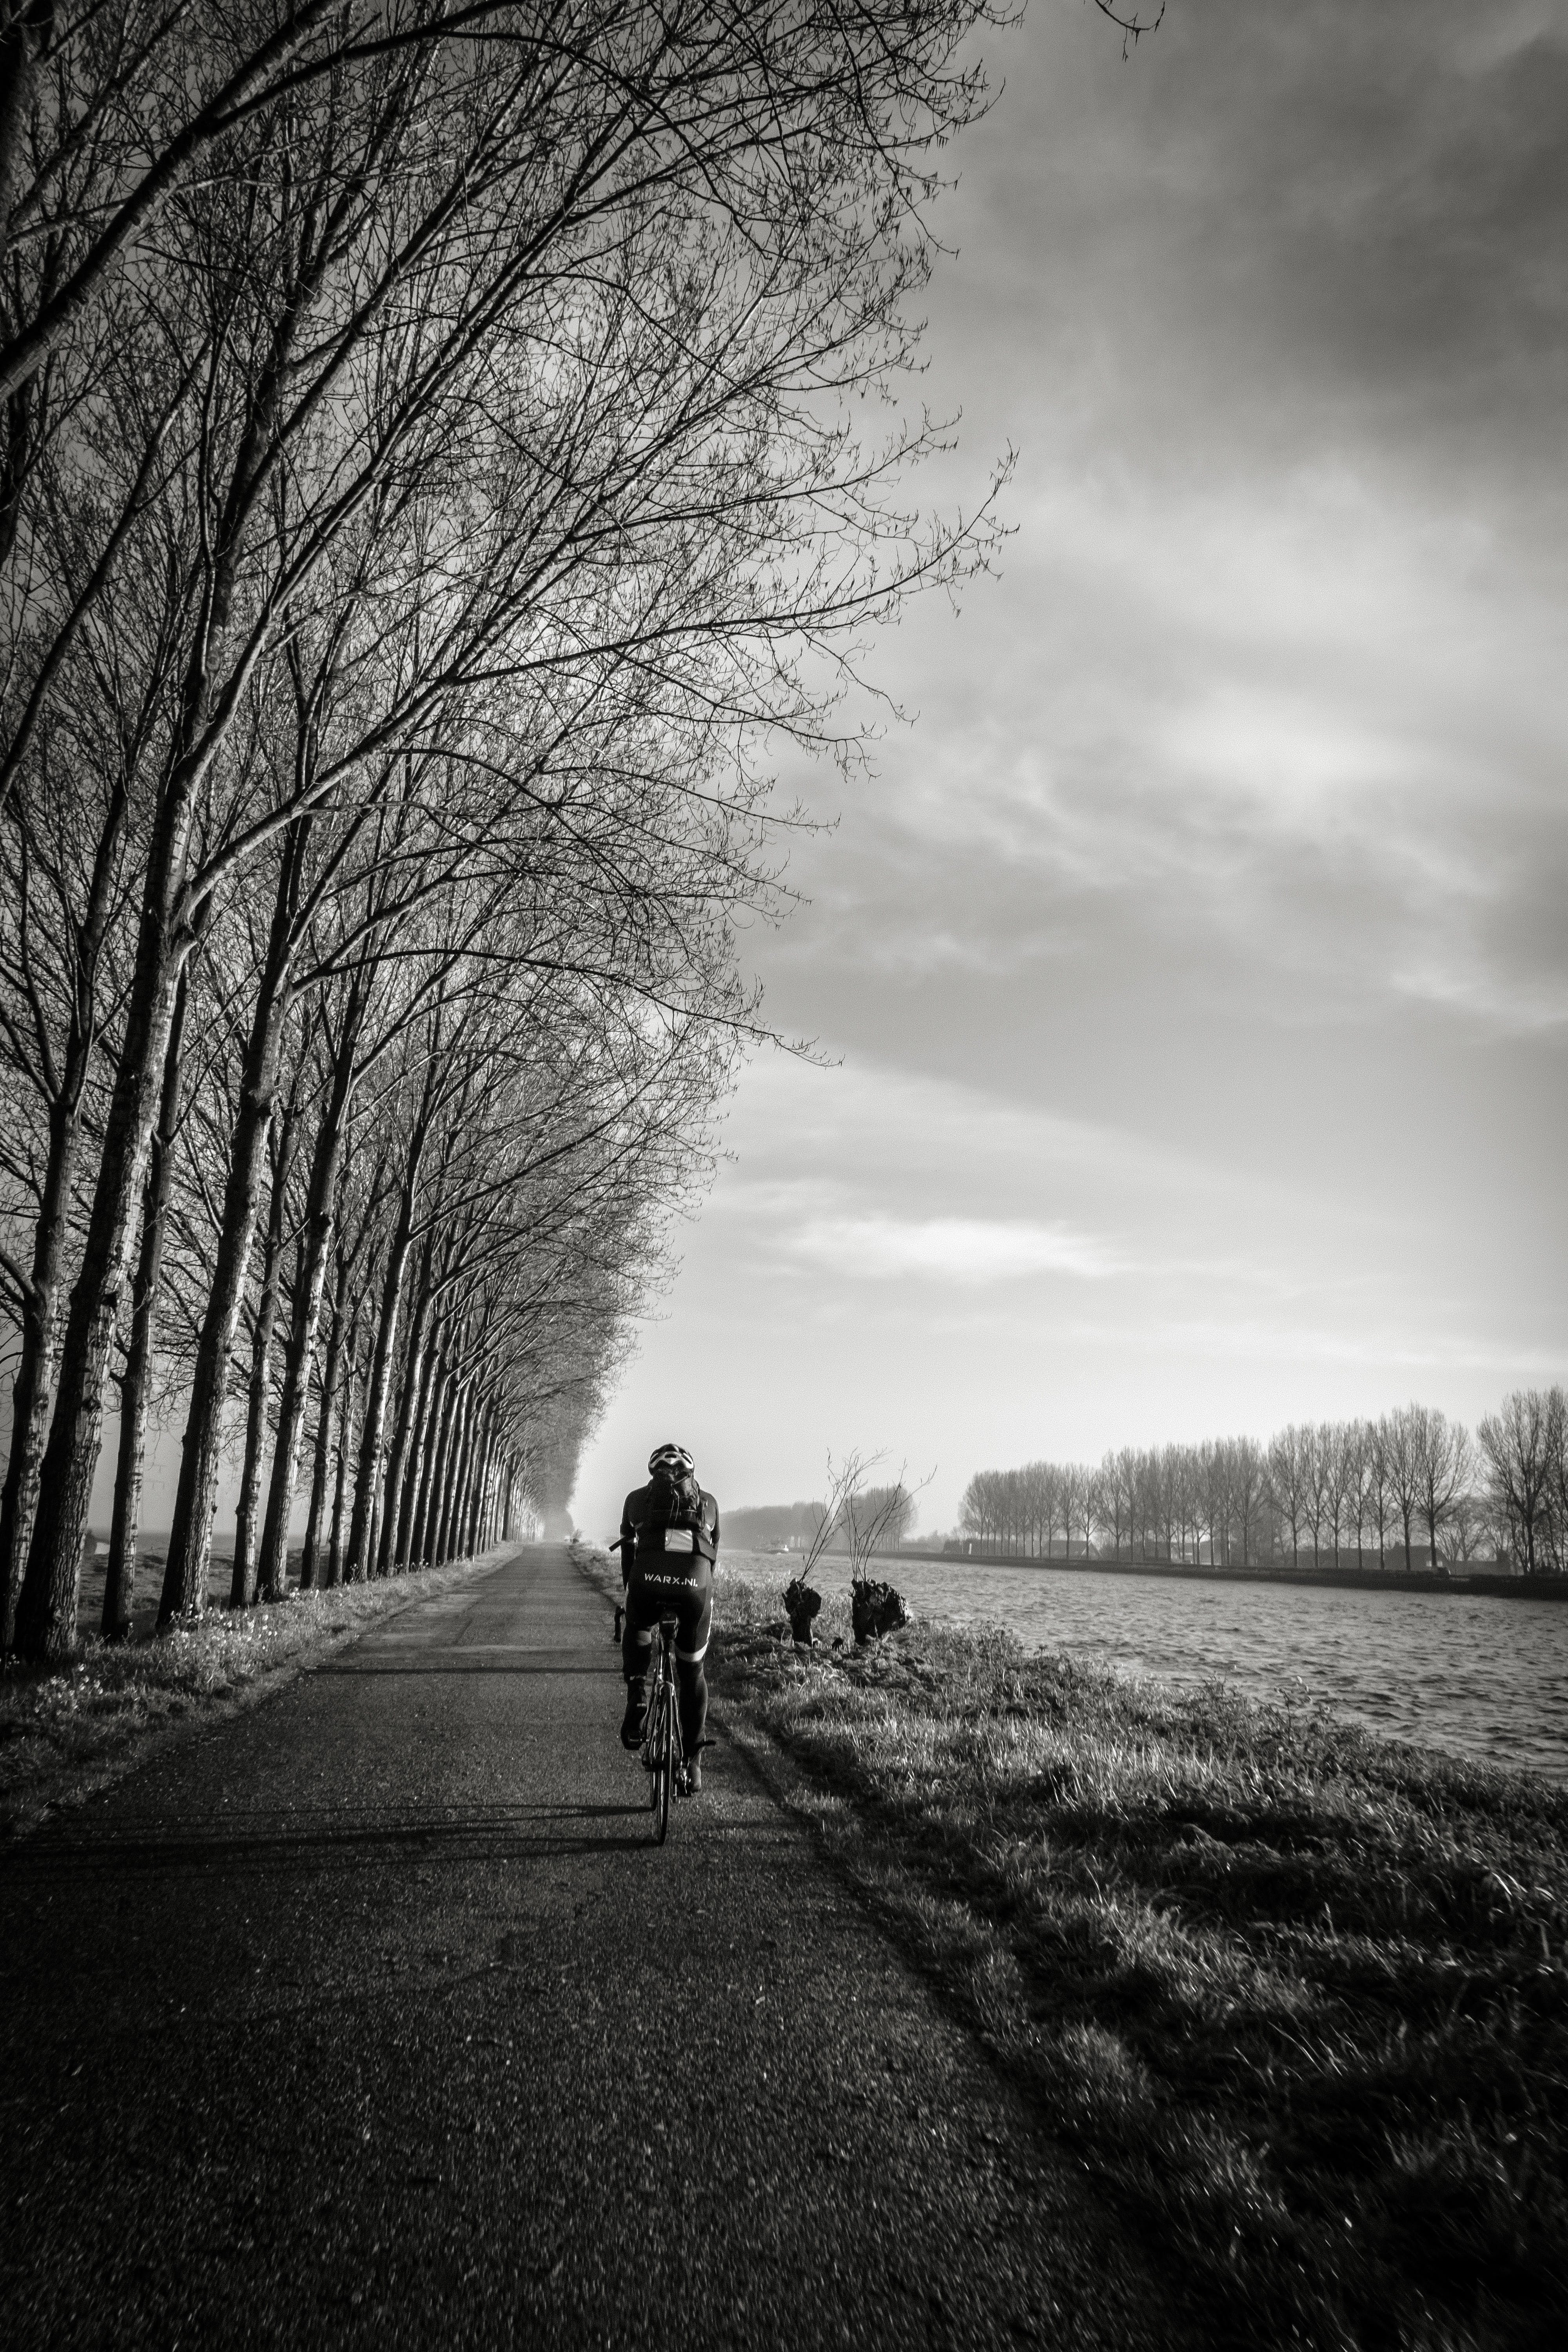 Grayscale of Person Riding Bike